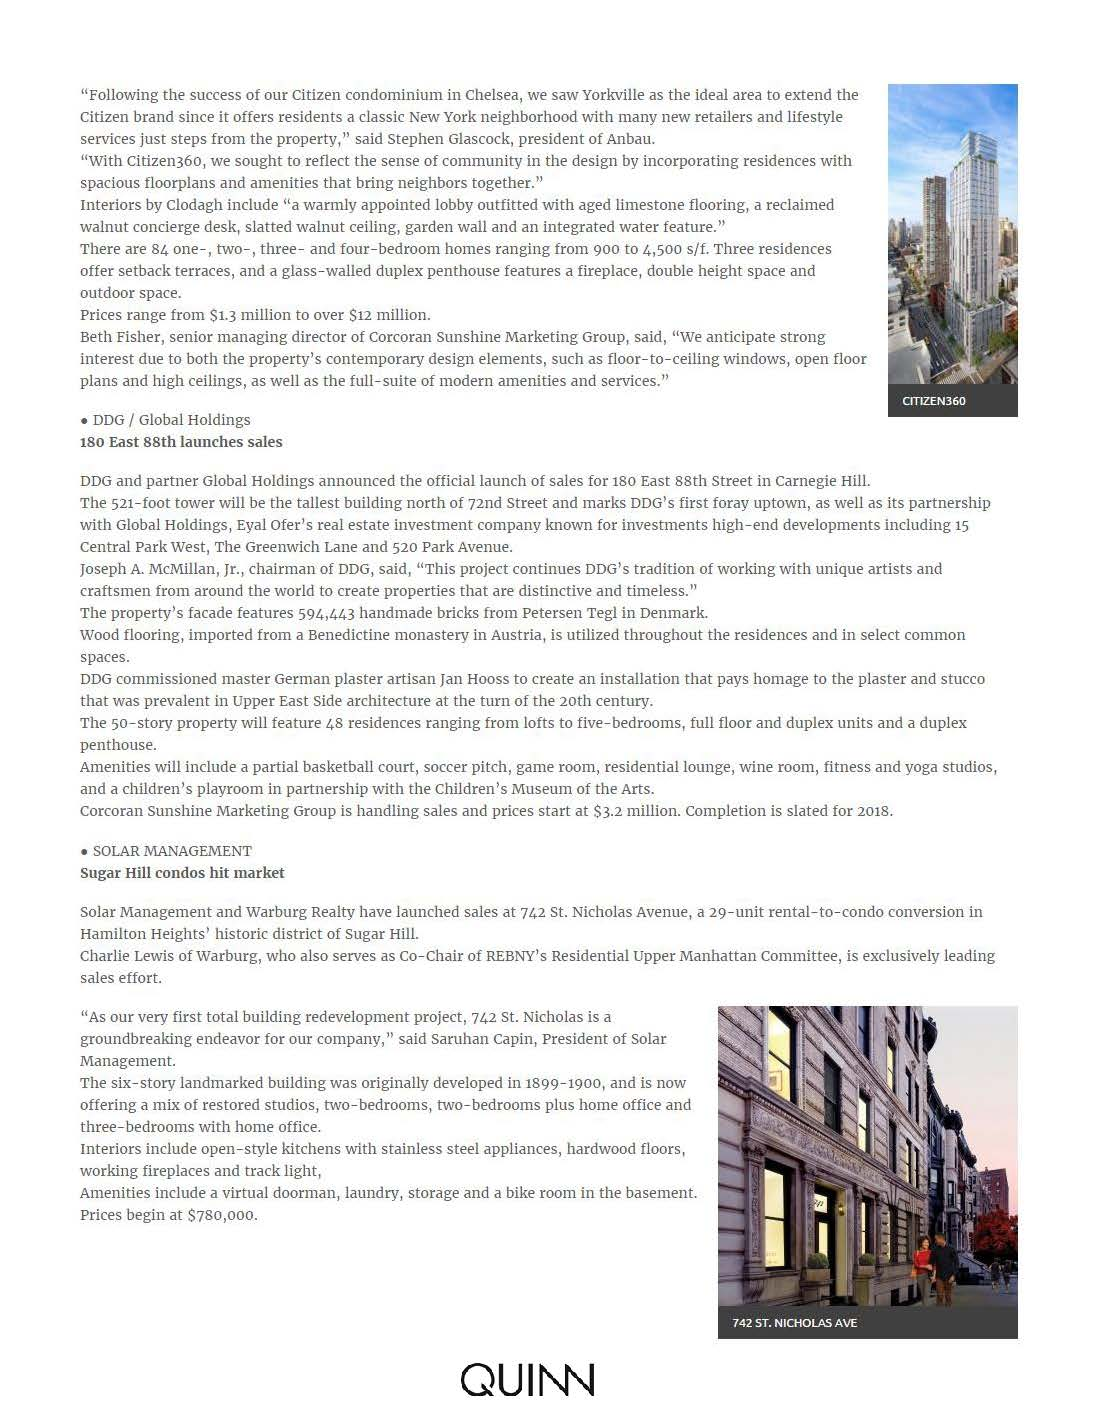 REW Online - NEW DEVELOPMENT, Baker House in LIC launches leasing, 520 Park unveils top floors - 02.26.16_Page_3